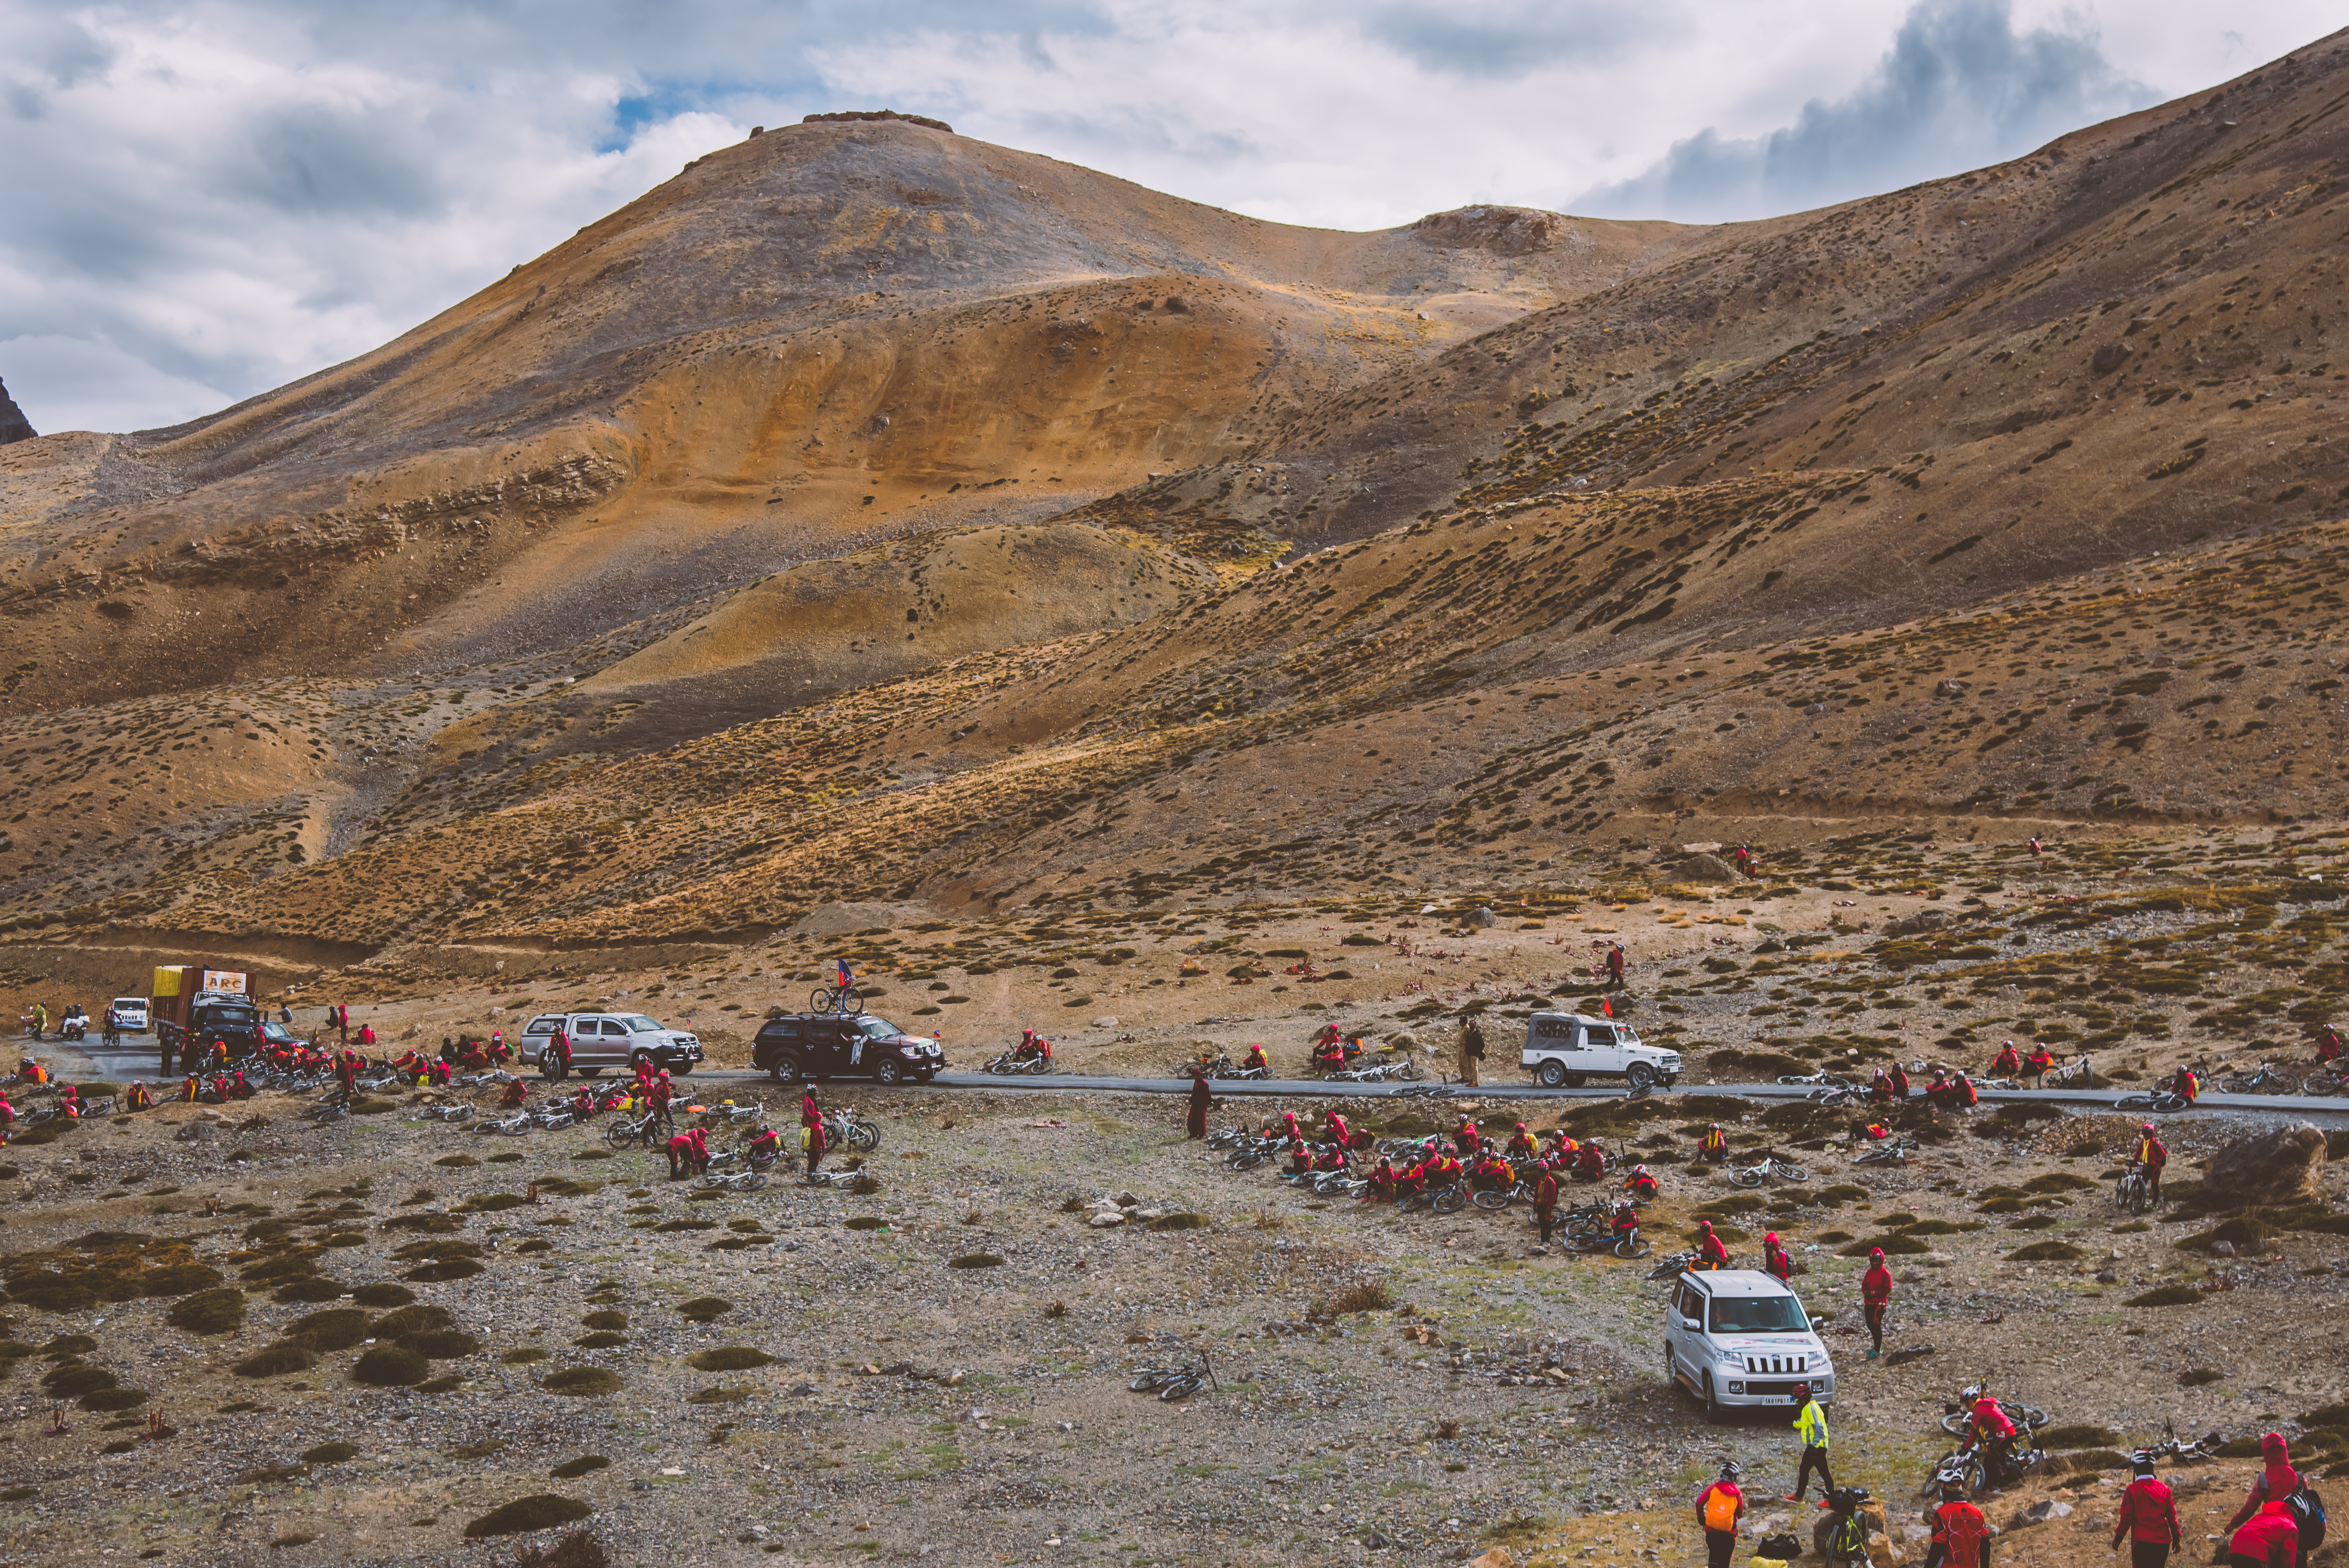 Mountain Bikers Camping After a Long Ride